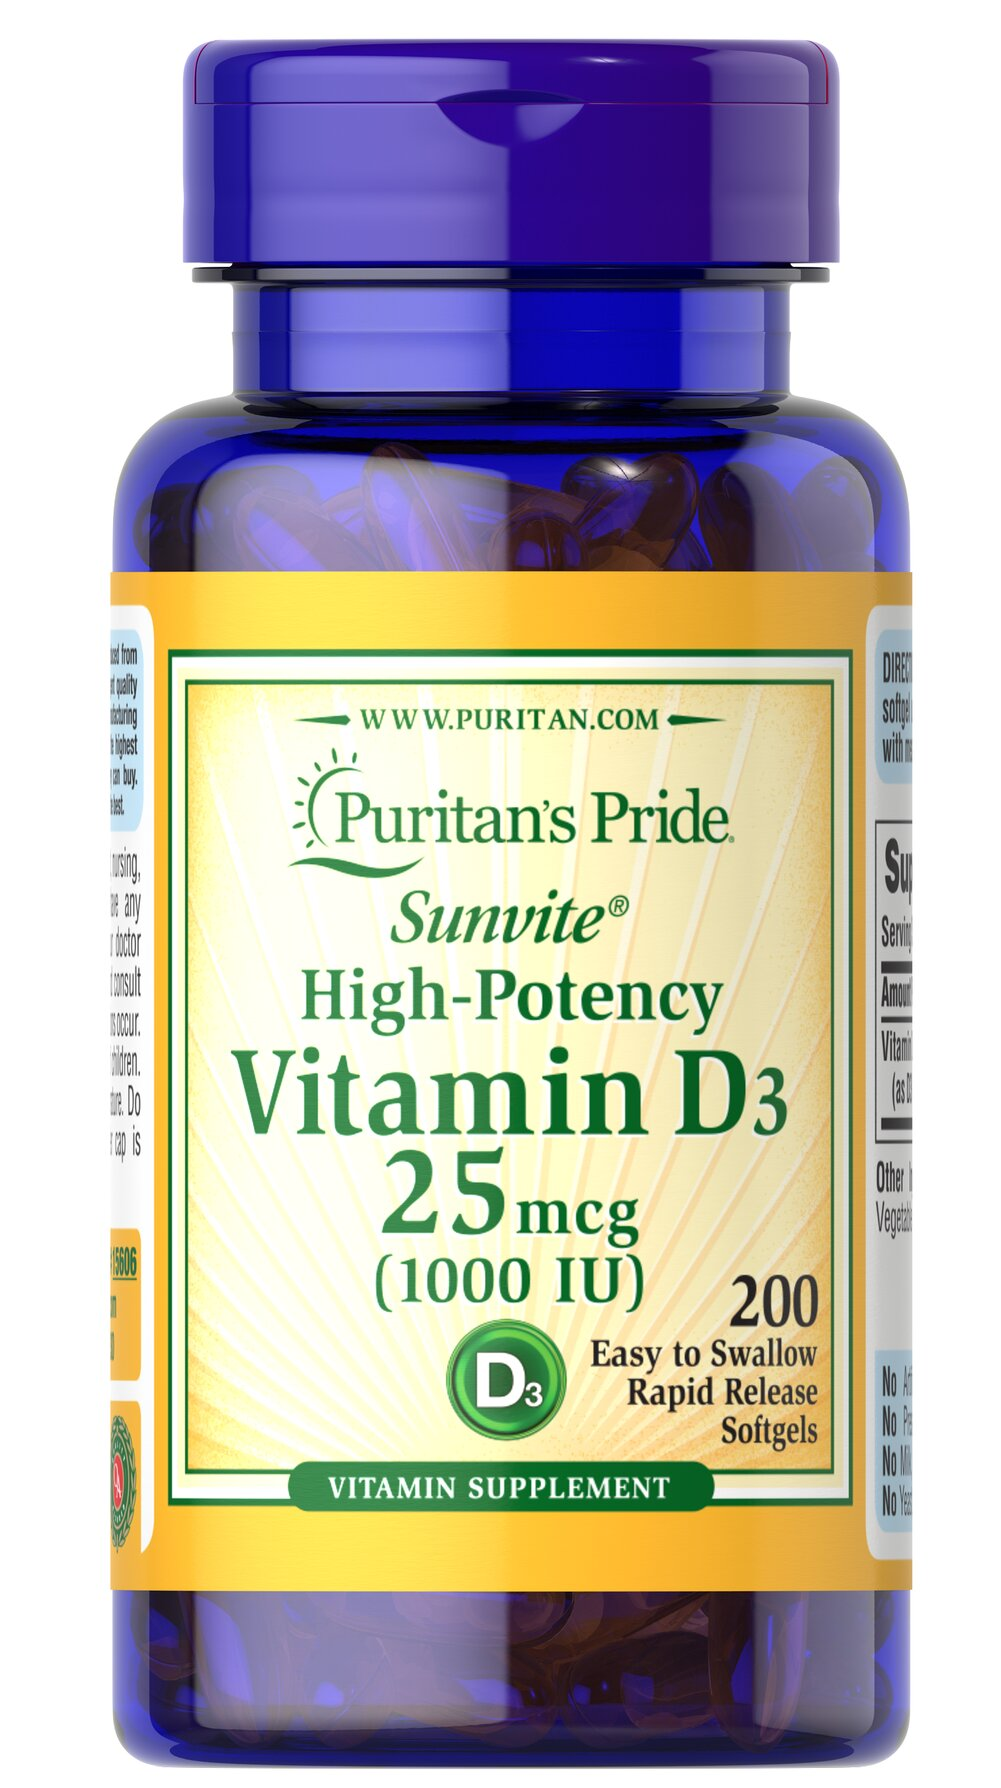 Vitamin D3 1000 IU <p>All Puritan's Pride Vitamin D formulas are Sunvite® D3, a potent and active form of Vitamin D. Together with Calcium, Vitamin D helps develop strong bones and teeth, and also assists in immune system health.**</p><p>Vitamin D3 is a more potent and bioavailable form compared to D2.<br /></p><p>Helps maintain healthy bones in adults. **</p><p>Assists in maintaining a healthy immune system.**</p><p>Supports neuro